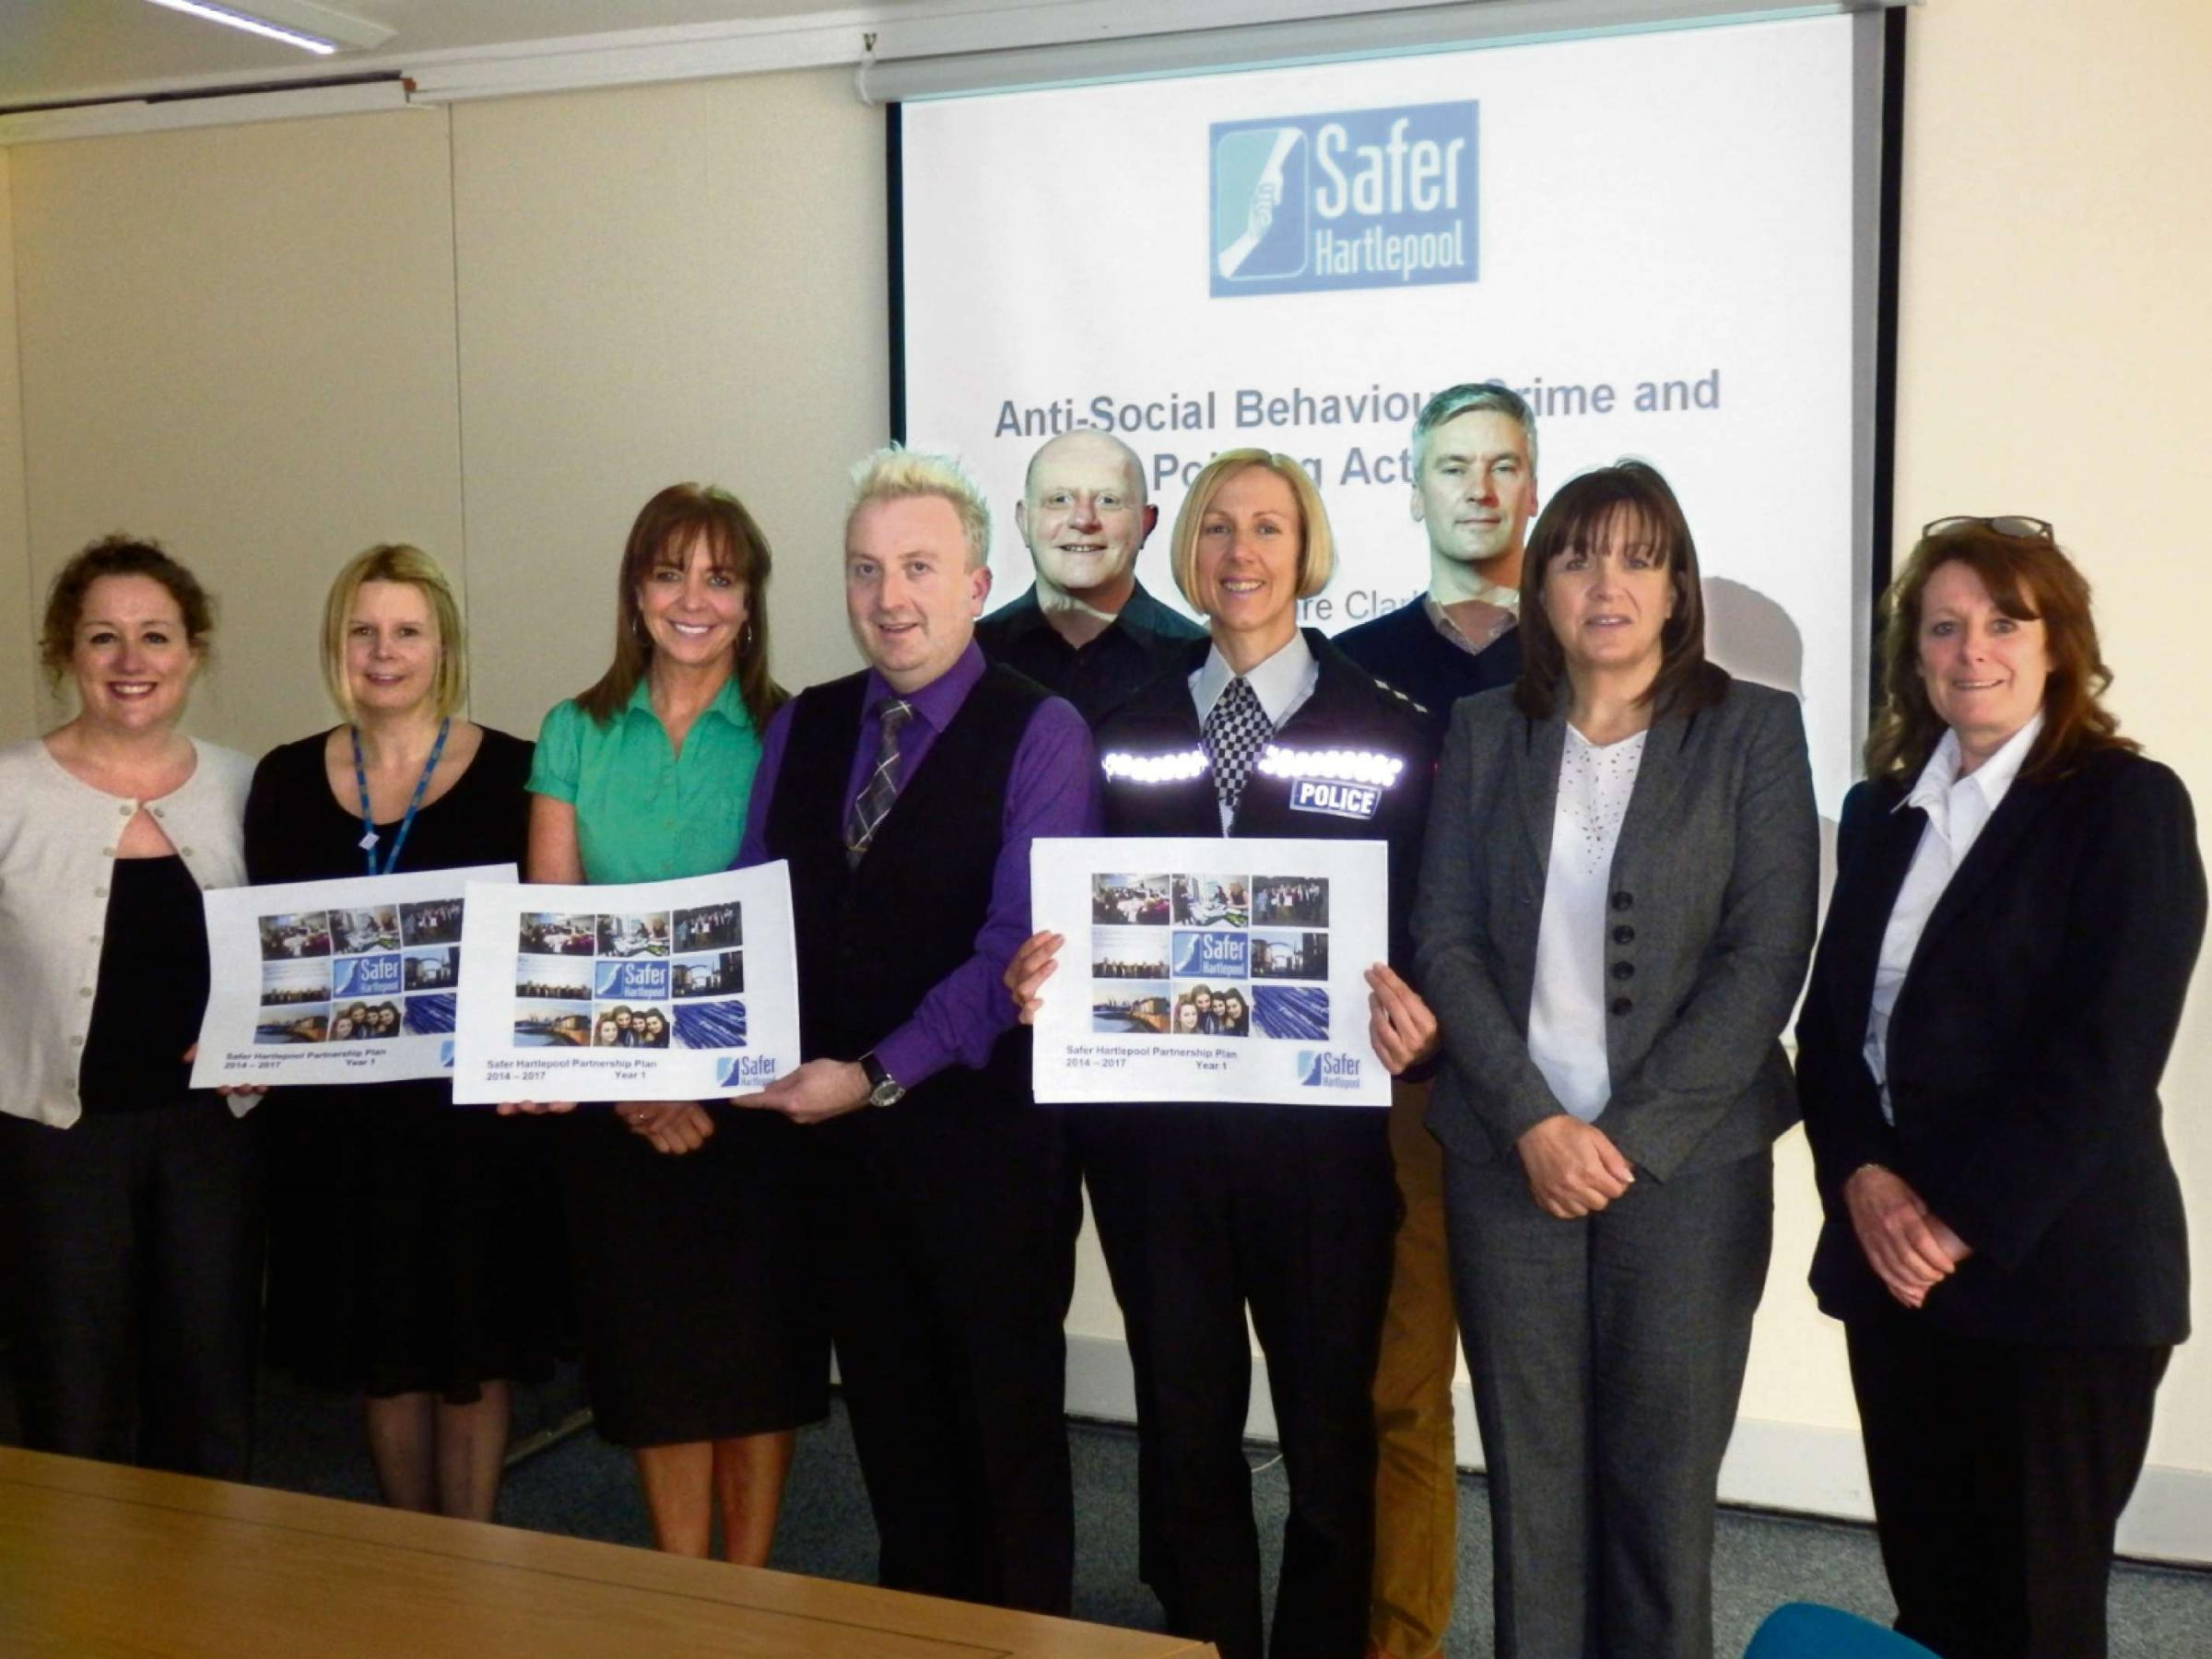 Picture caption: Councillor Christopher Akers-Belcher (fourth from the left) with some of the other Safer Hartlepool Partnership members and representatives at the launch of the new plan